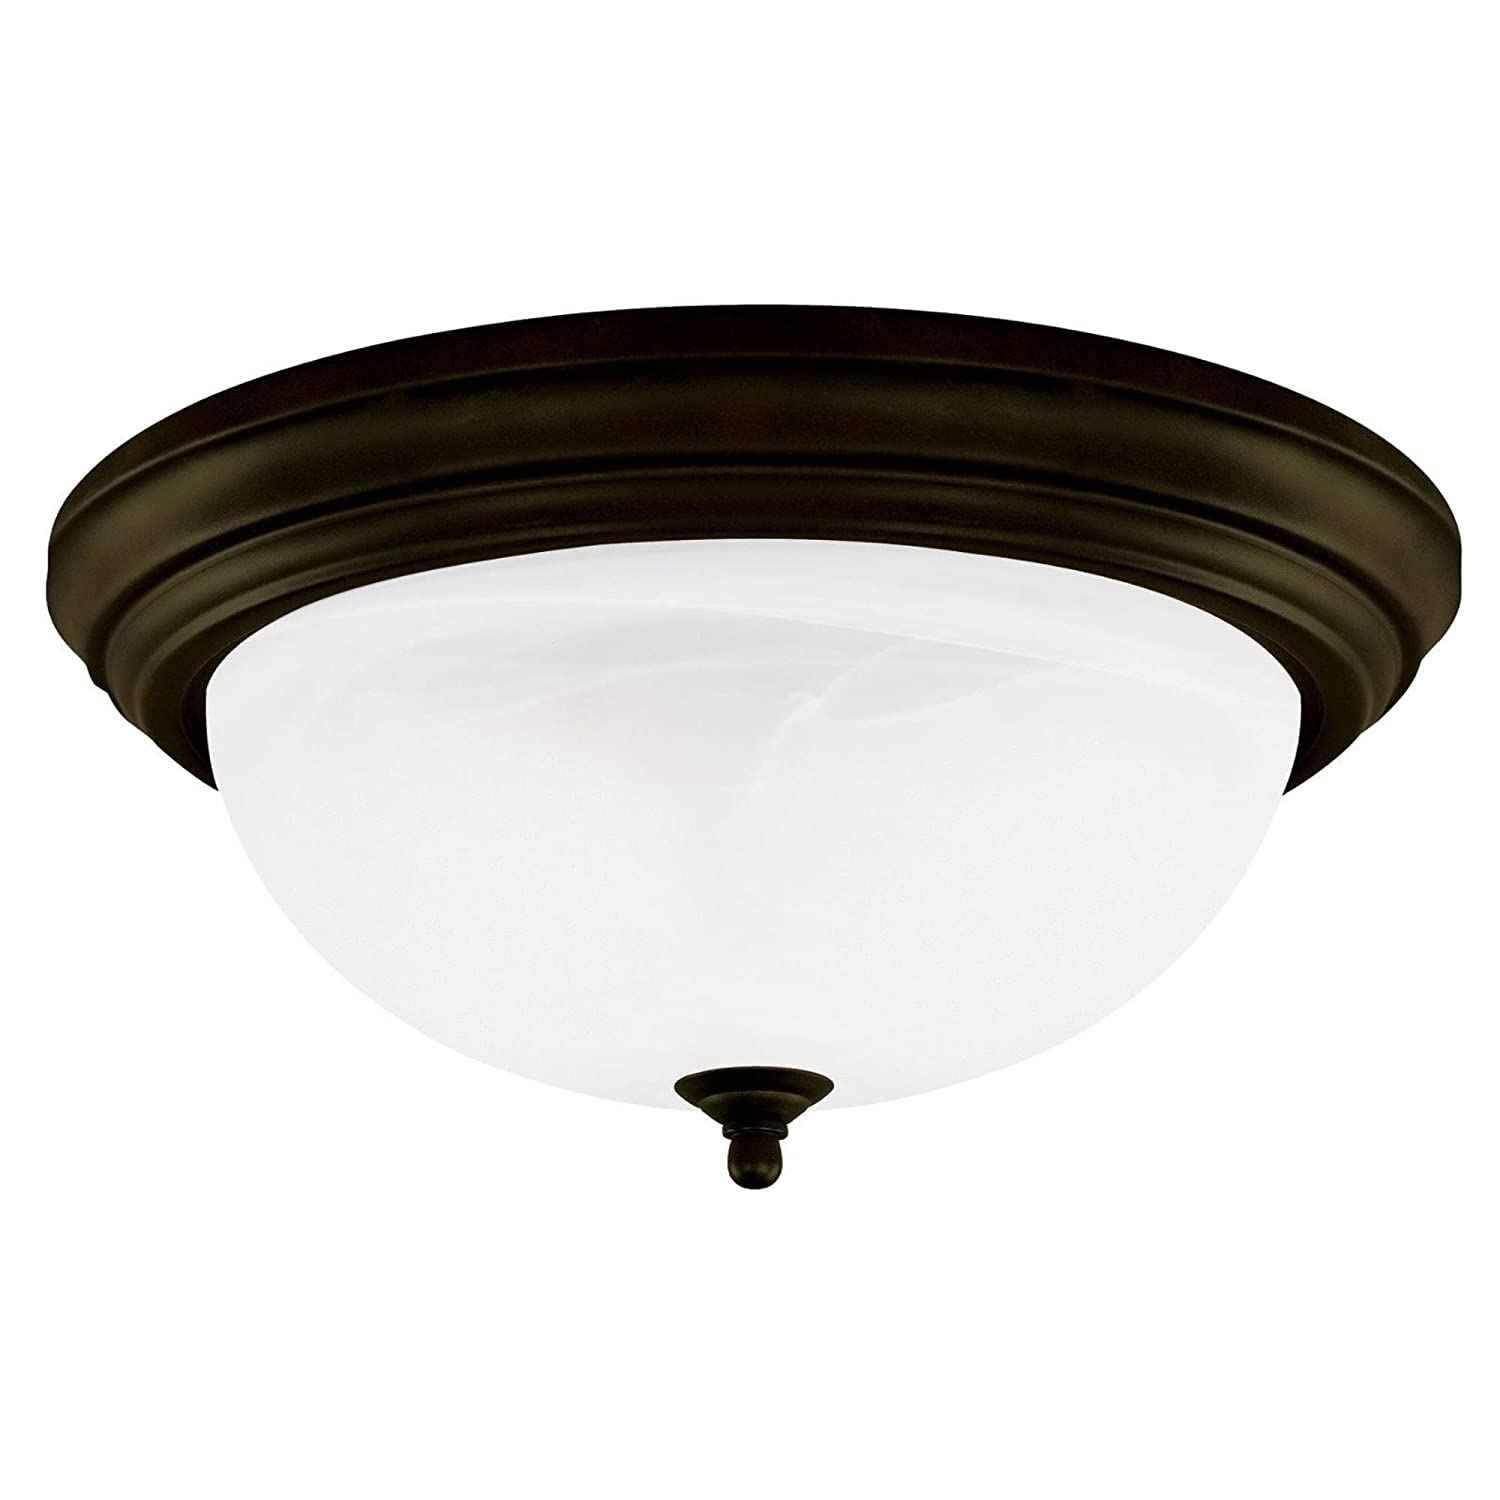 Westinghouse 64292 15-Inch Three-Light Flush Mount Fixture, Oil Rubbed Bronze with Frosted White Alabaster Globe